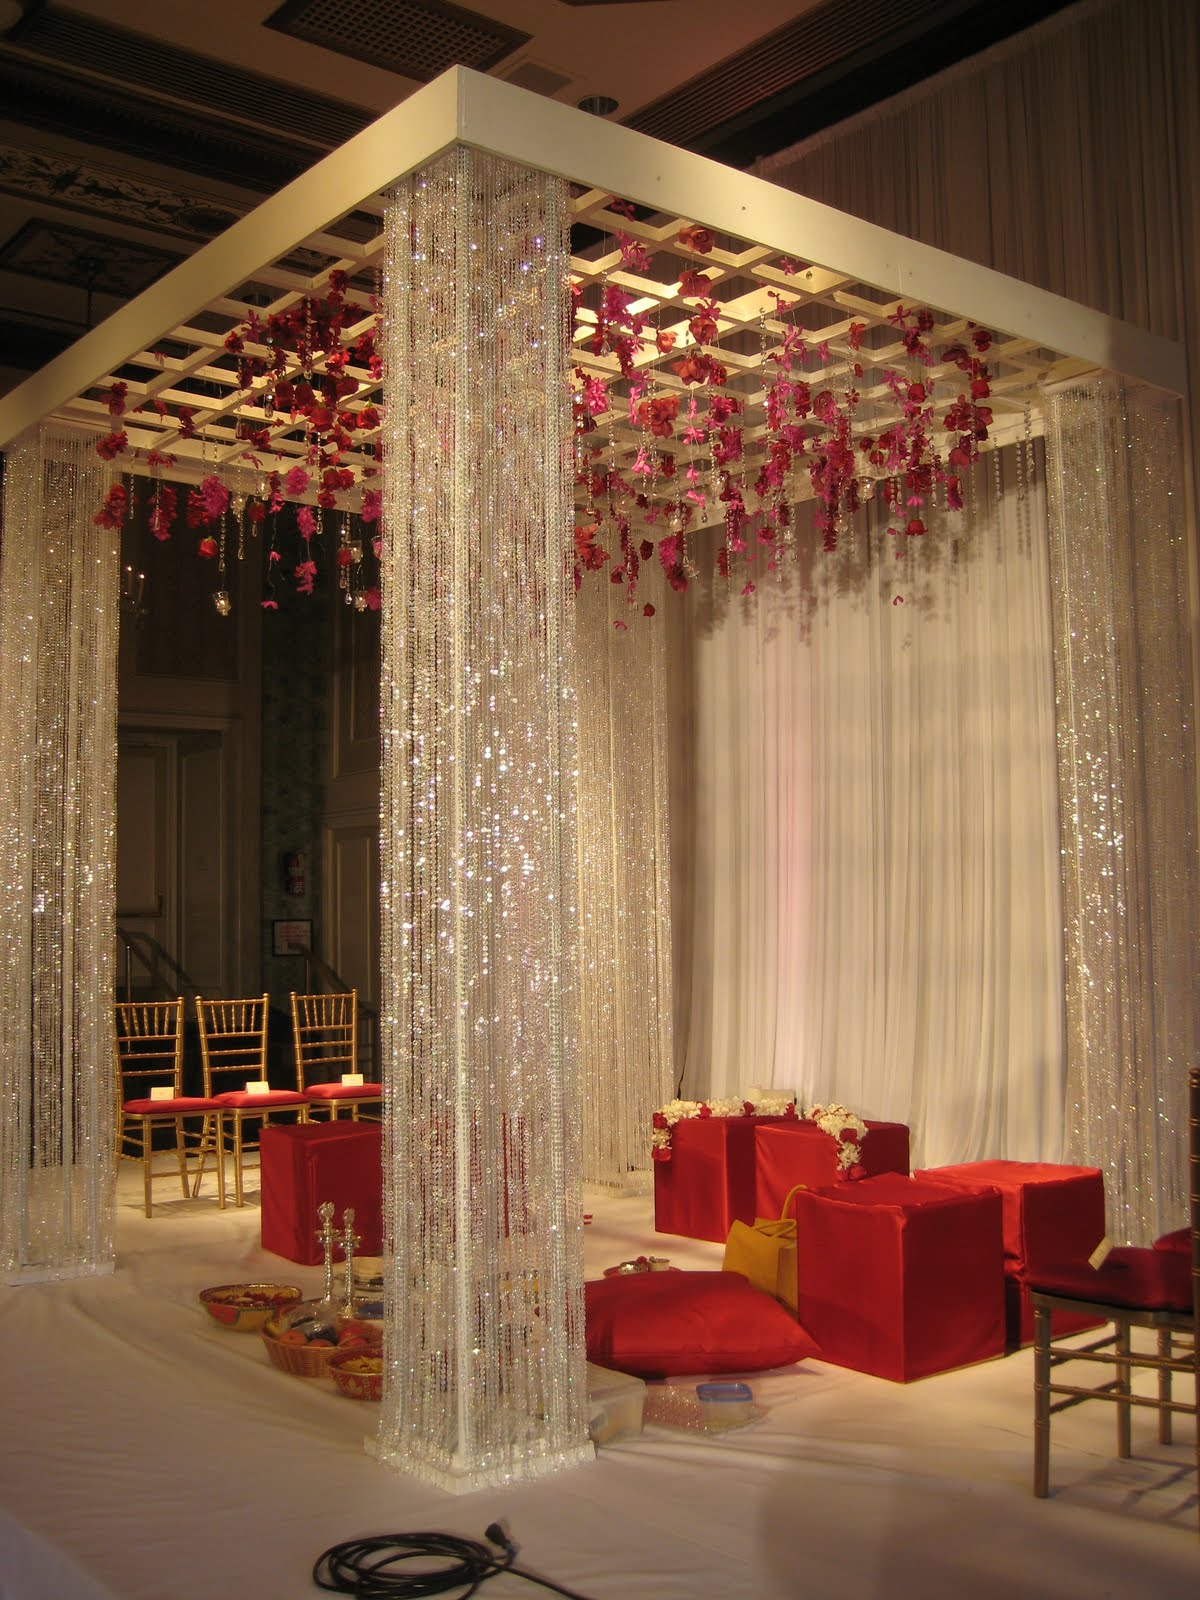 Wedding stages mandap decoration ideas decorate it to for Red modern decor